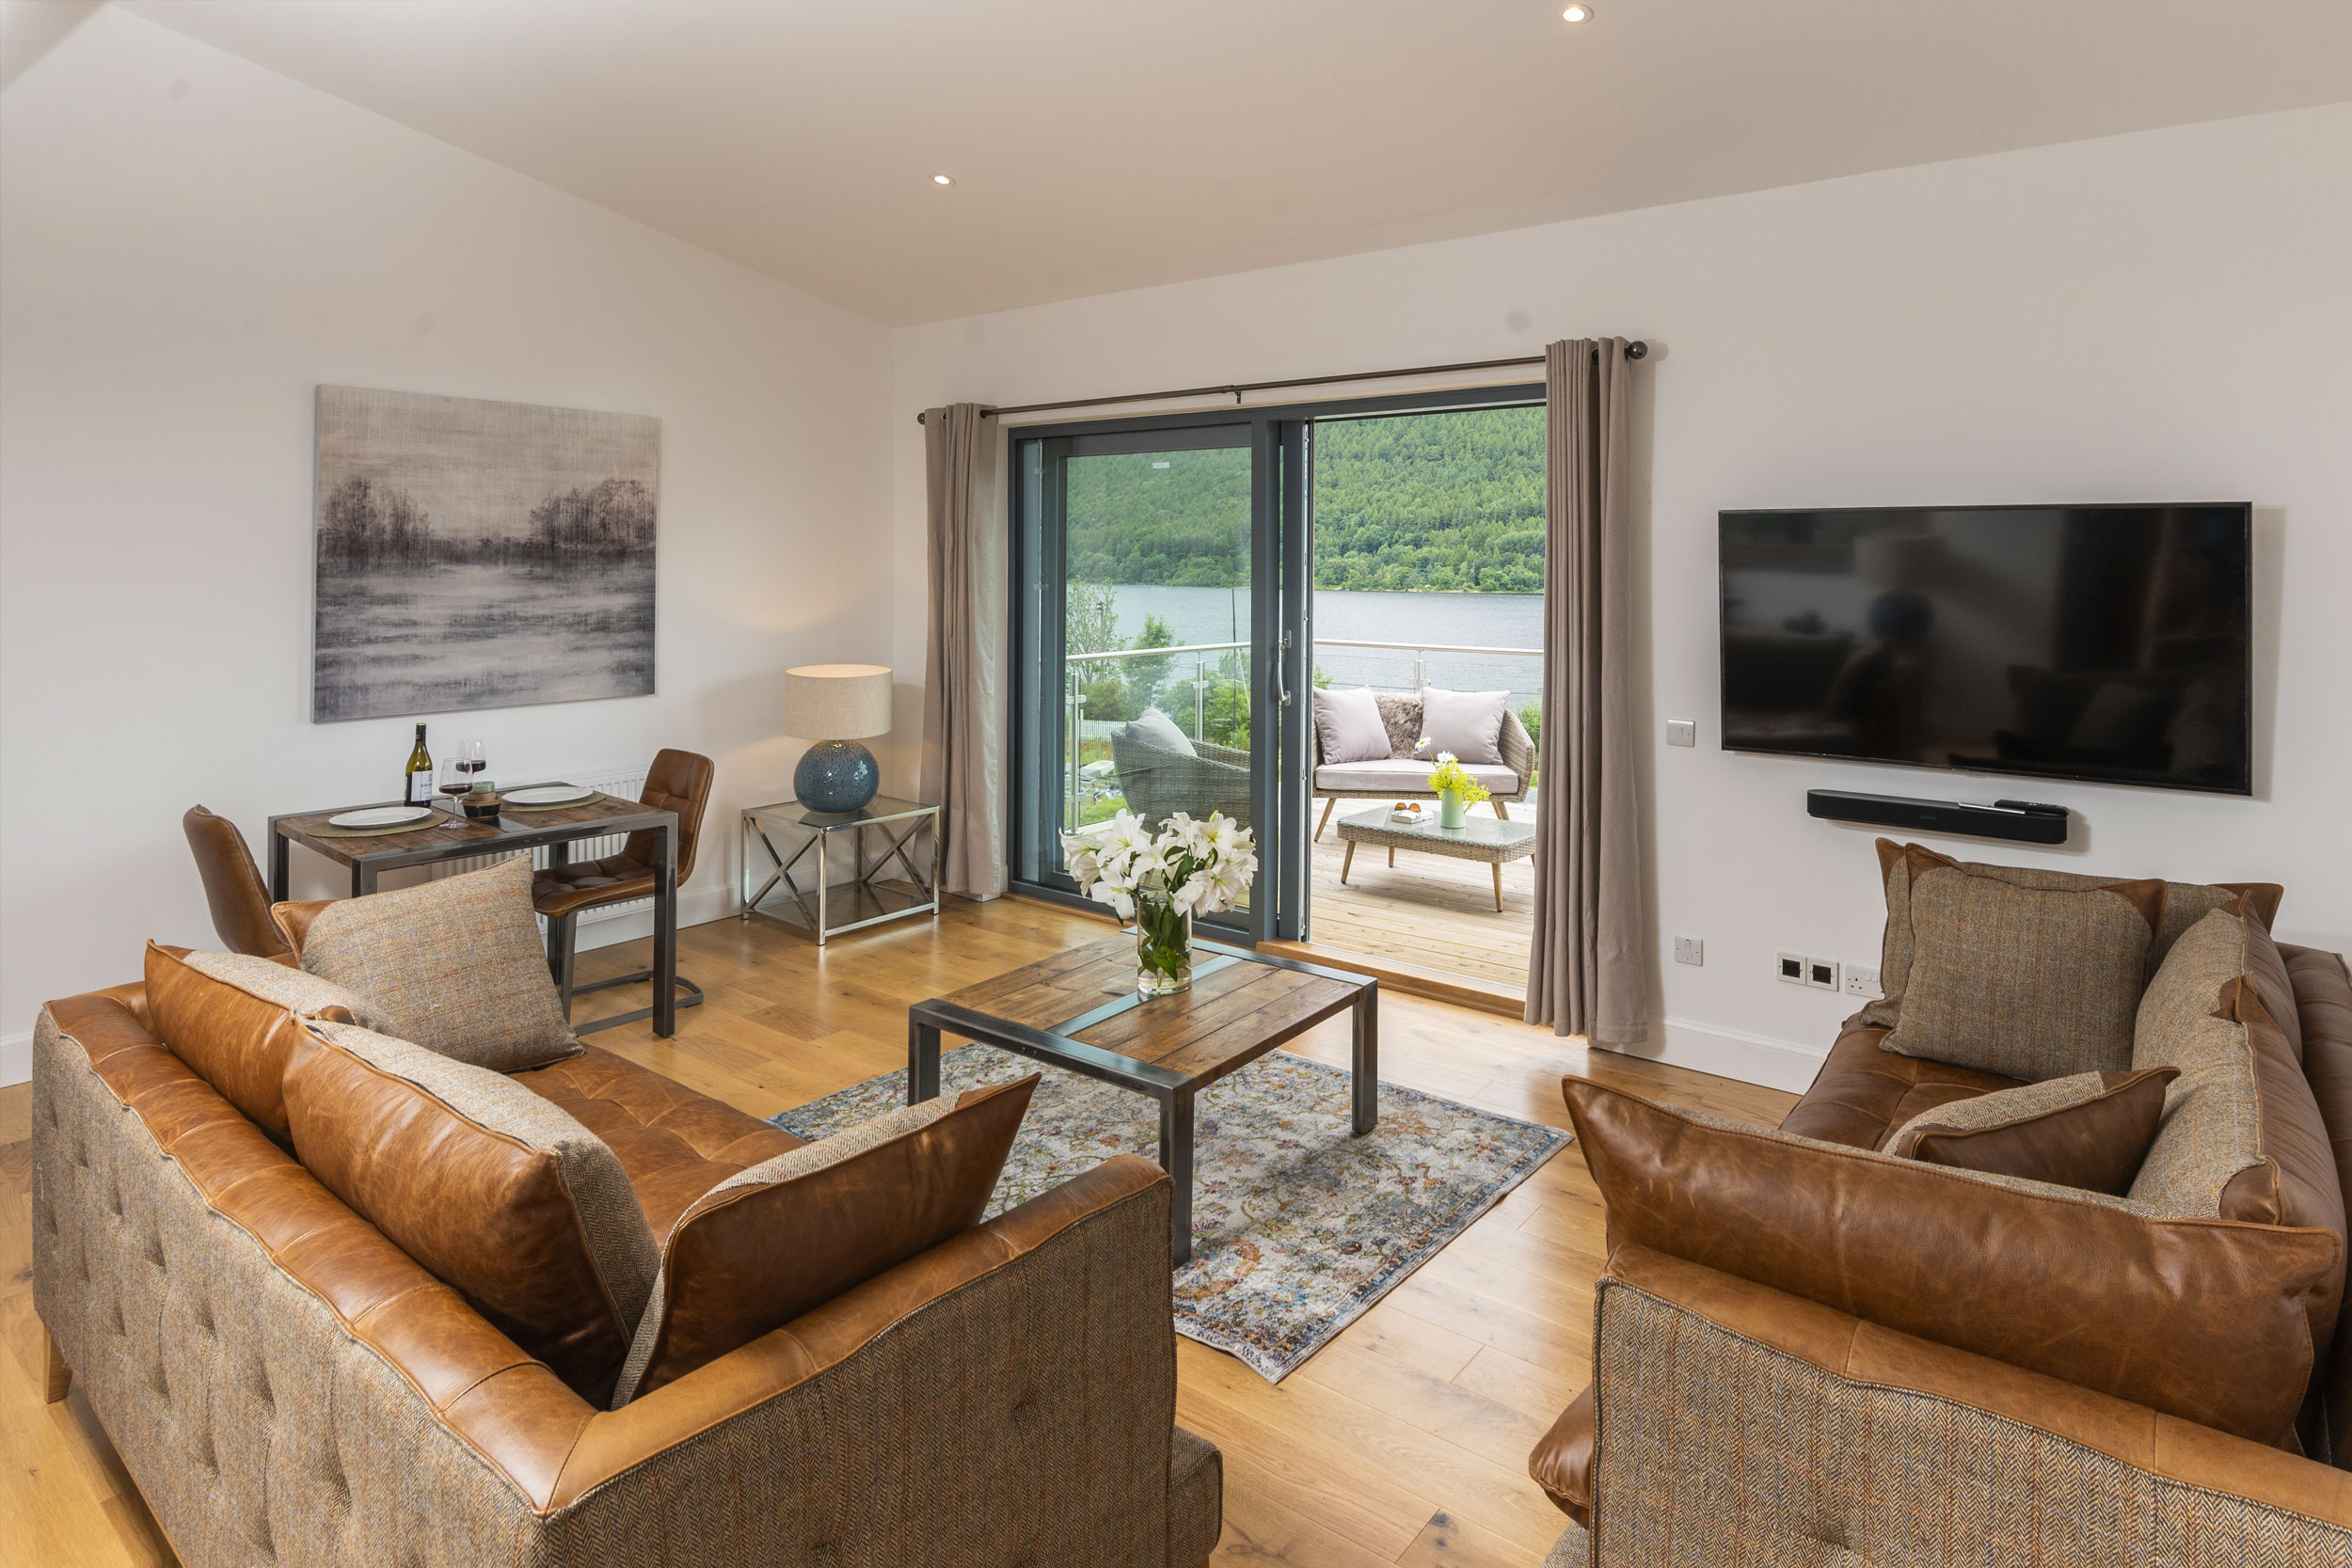 Open Plan Living Space With Brown Leather Sofas And View Of Loch